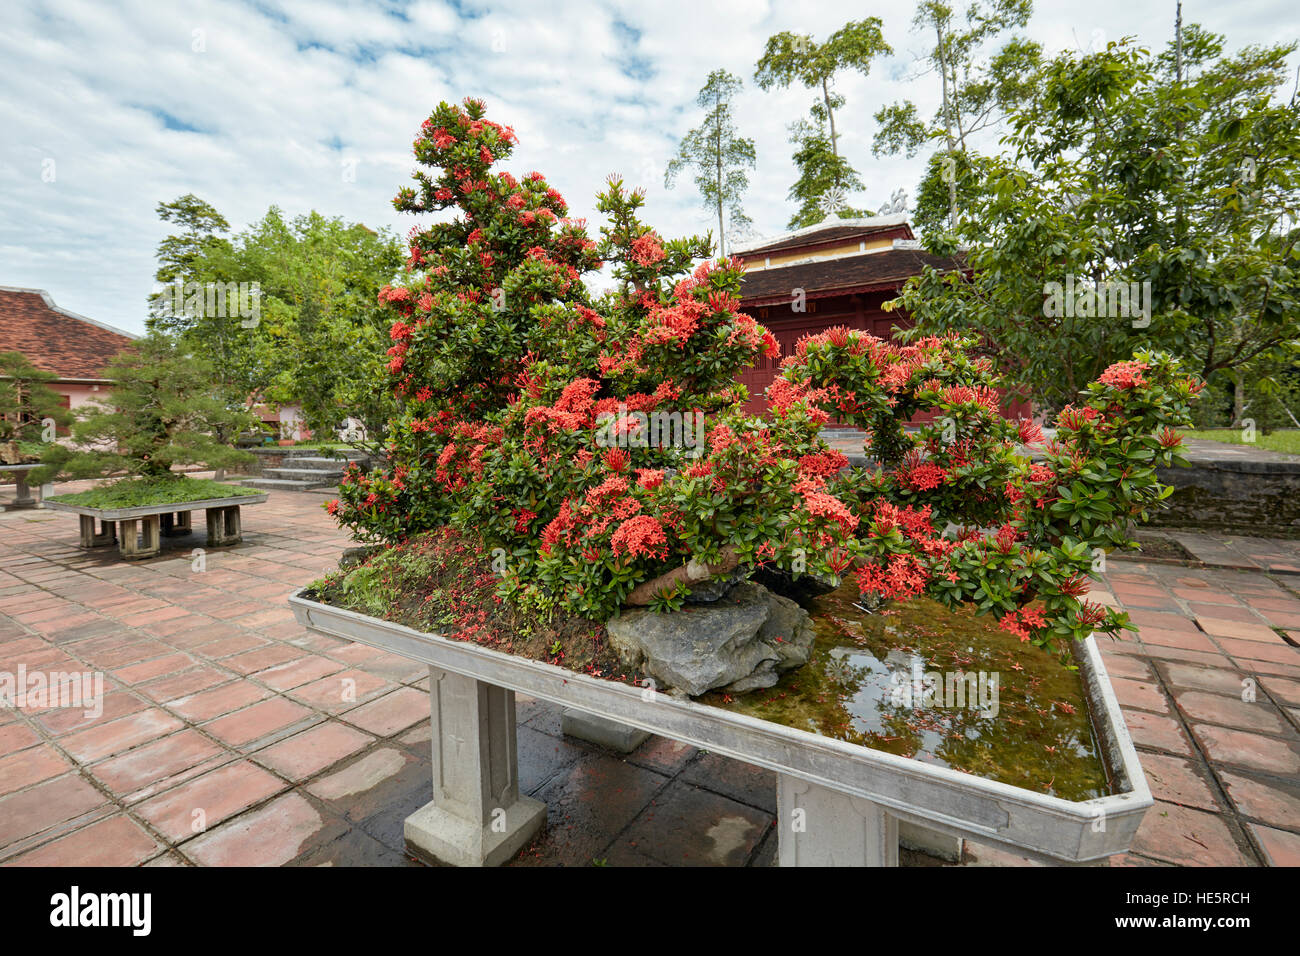 Vietnam Bonsai Tree Stock Photos & Vietnam Bonsai Tree Stock Images ...